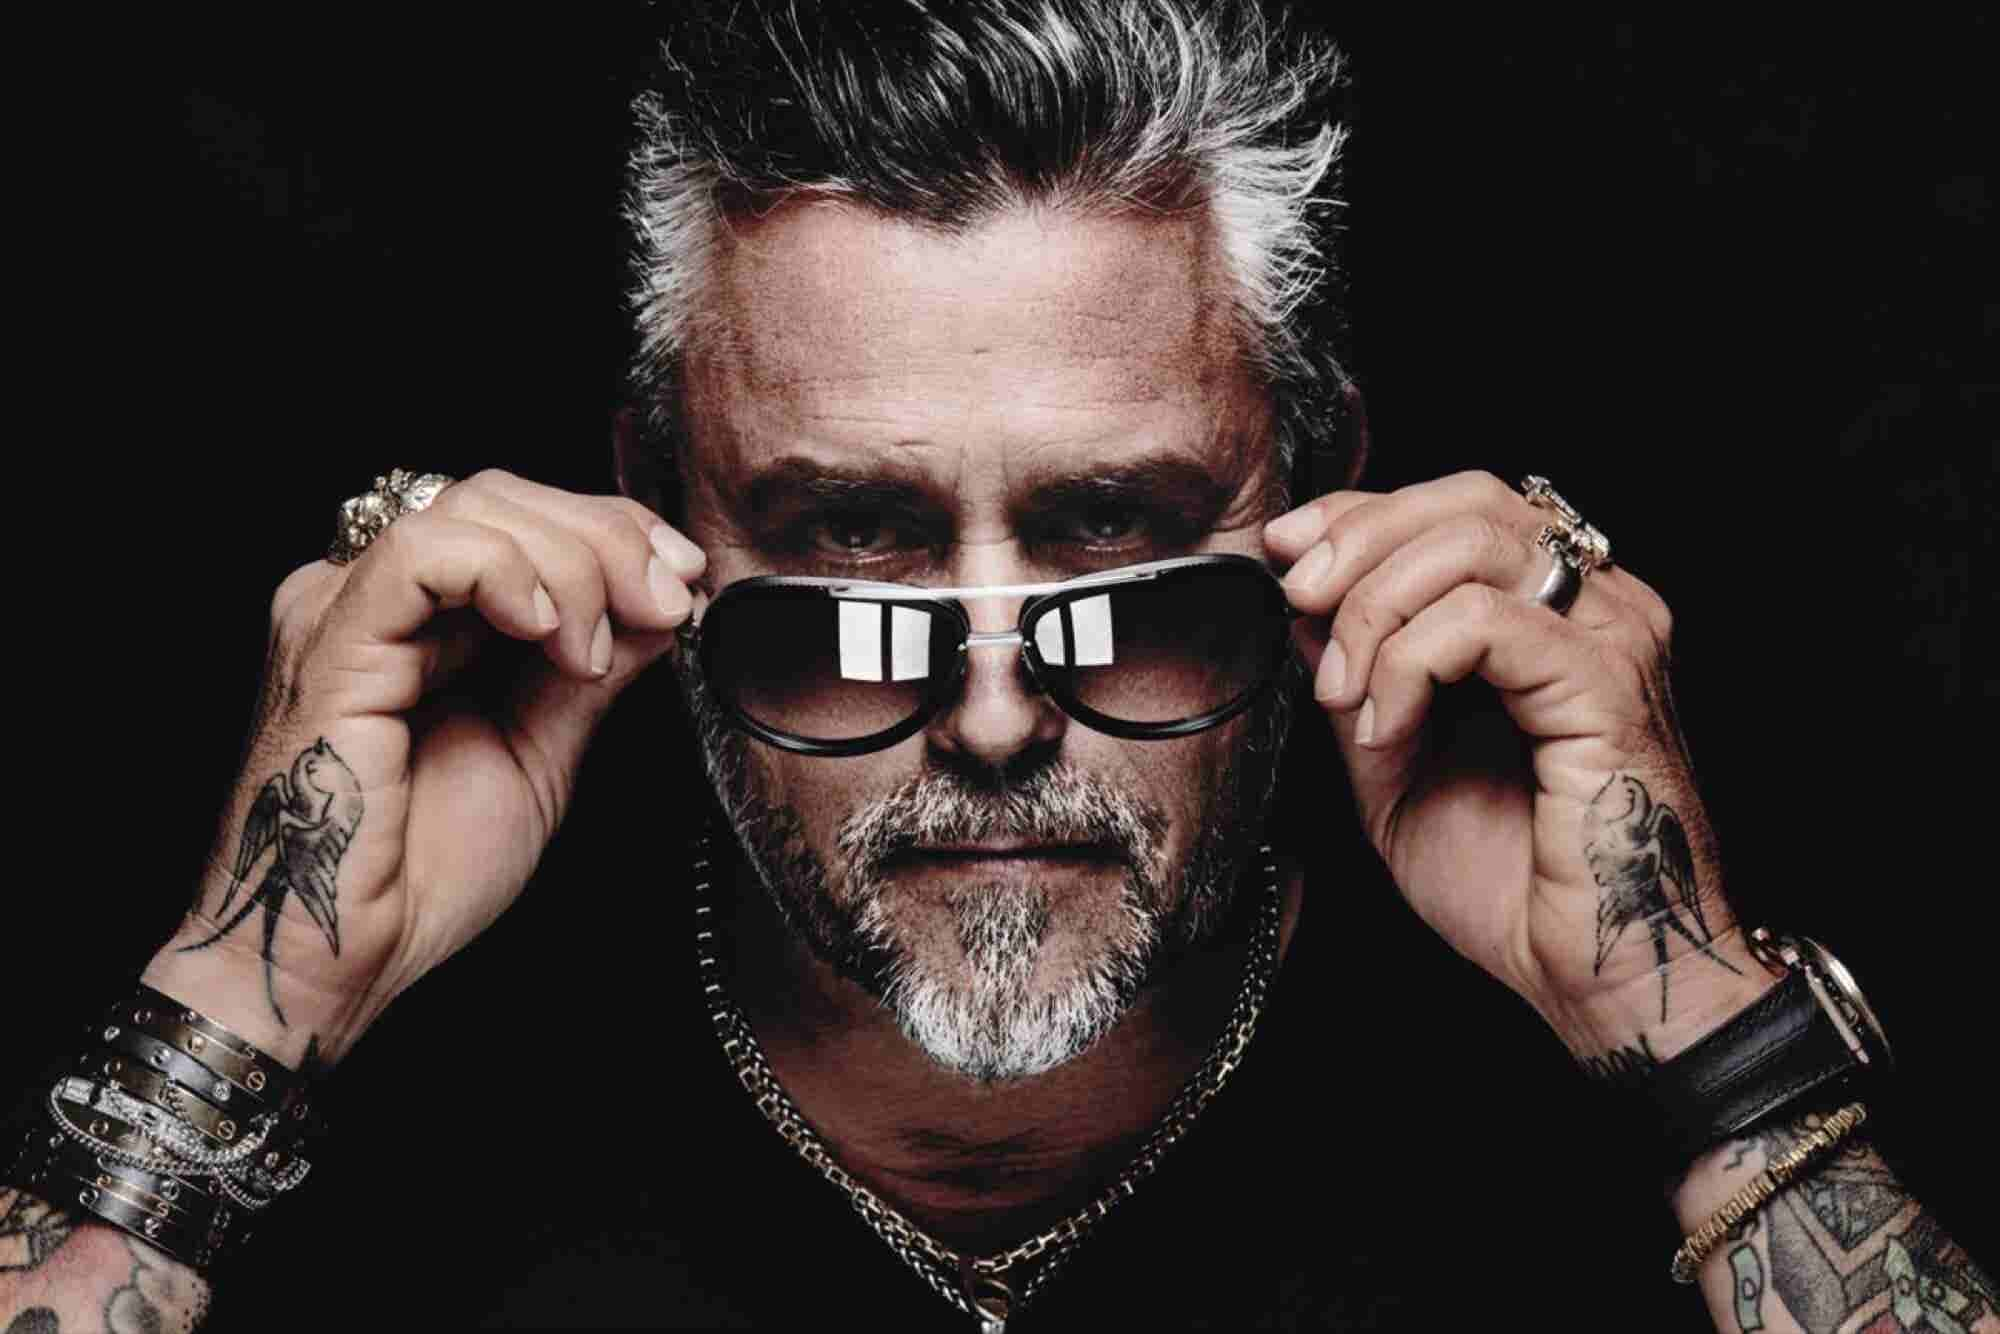 The Craziest Plan That Worked: How Richard Rawlings Hustled His Way Into the TV Show 'Fast N' Loud,' Then Used It to Build a Multimillion-Dollar Brand